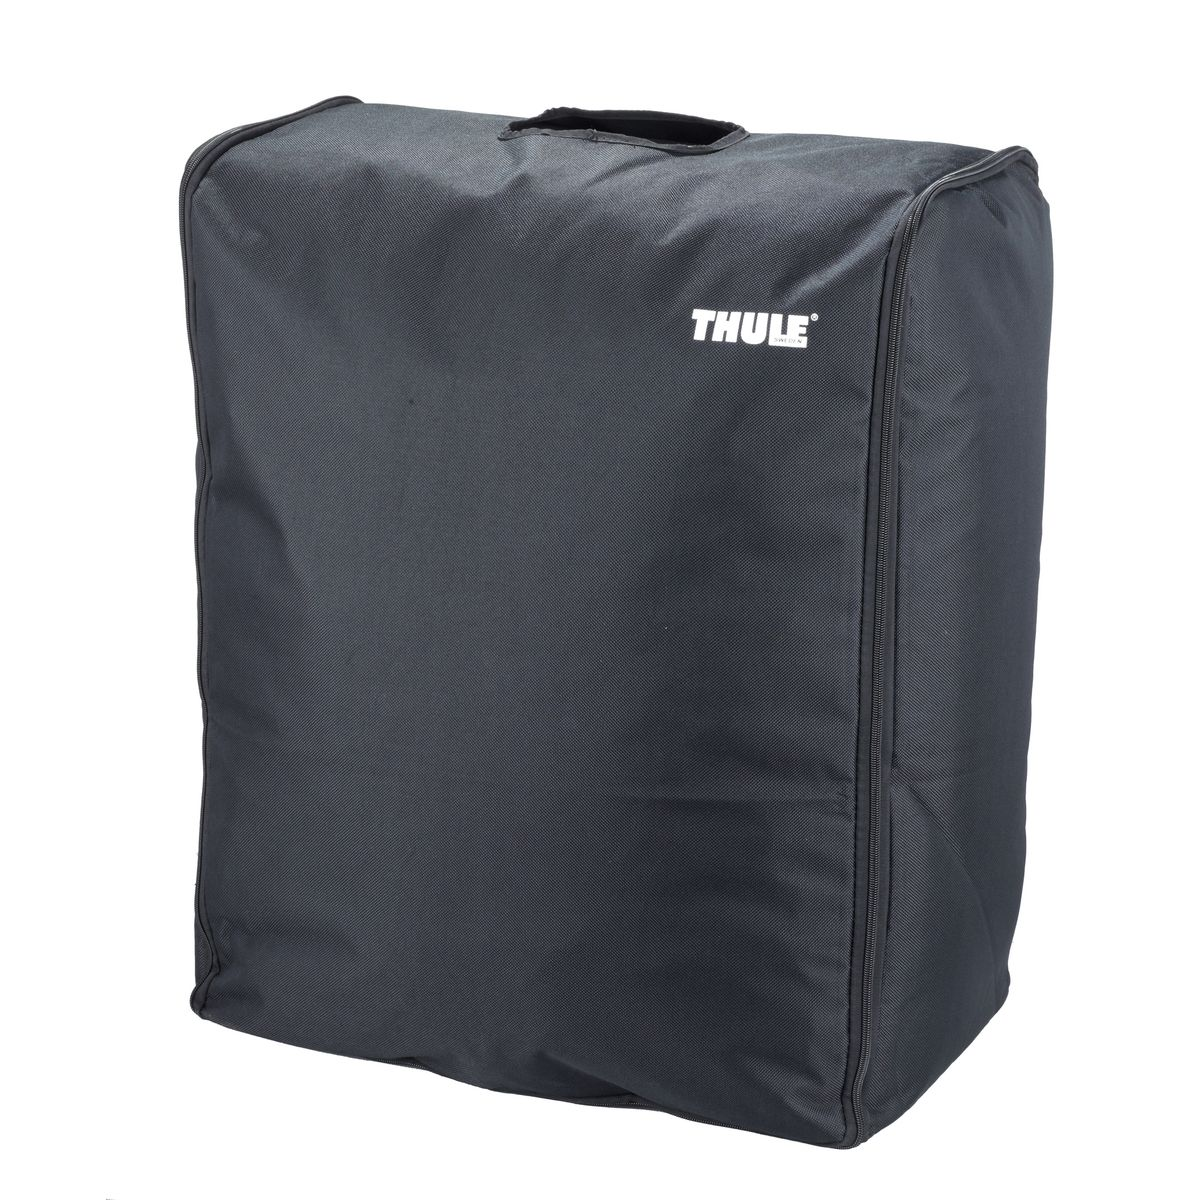 Thule 931-1 transport bag for EasyFold hitch rack | Cykelkuffert